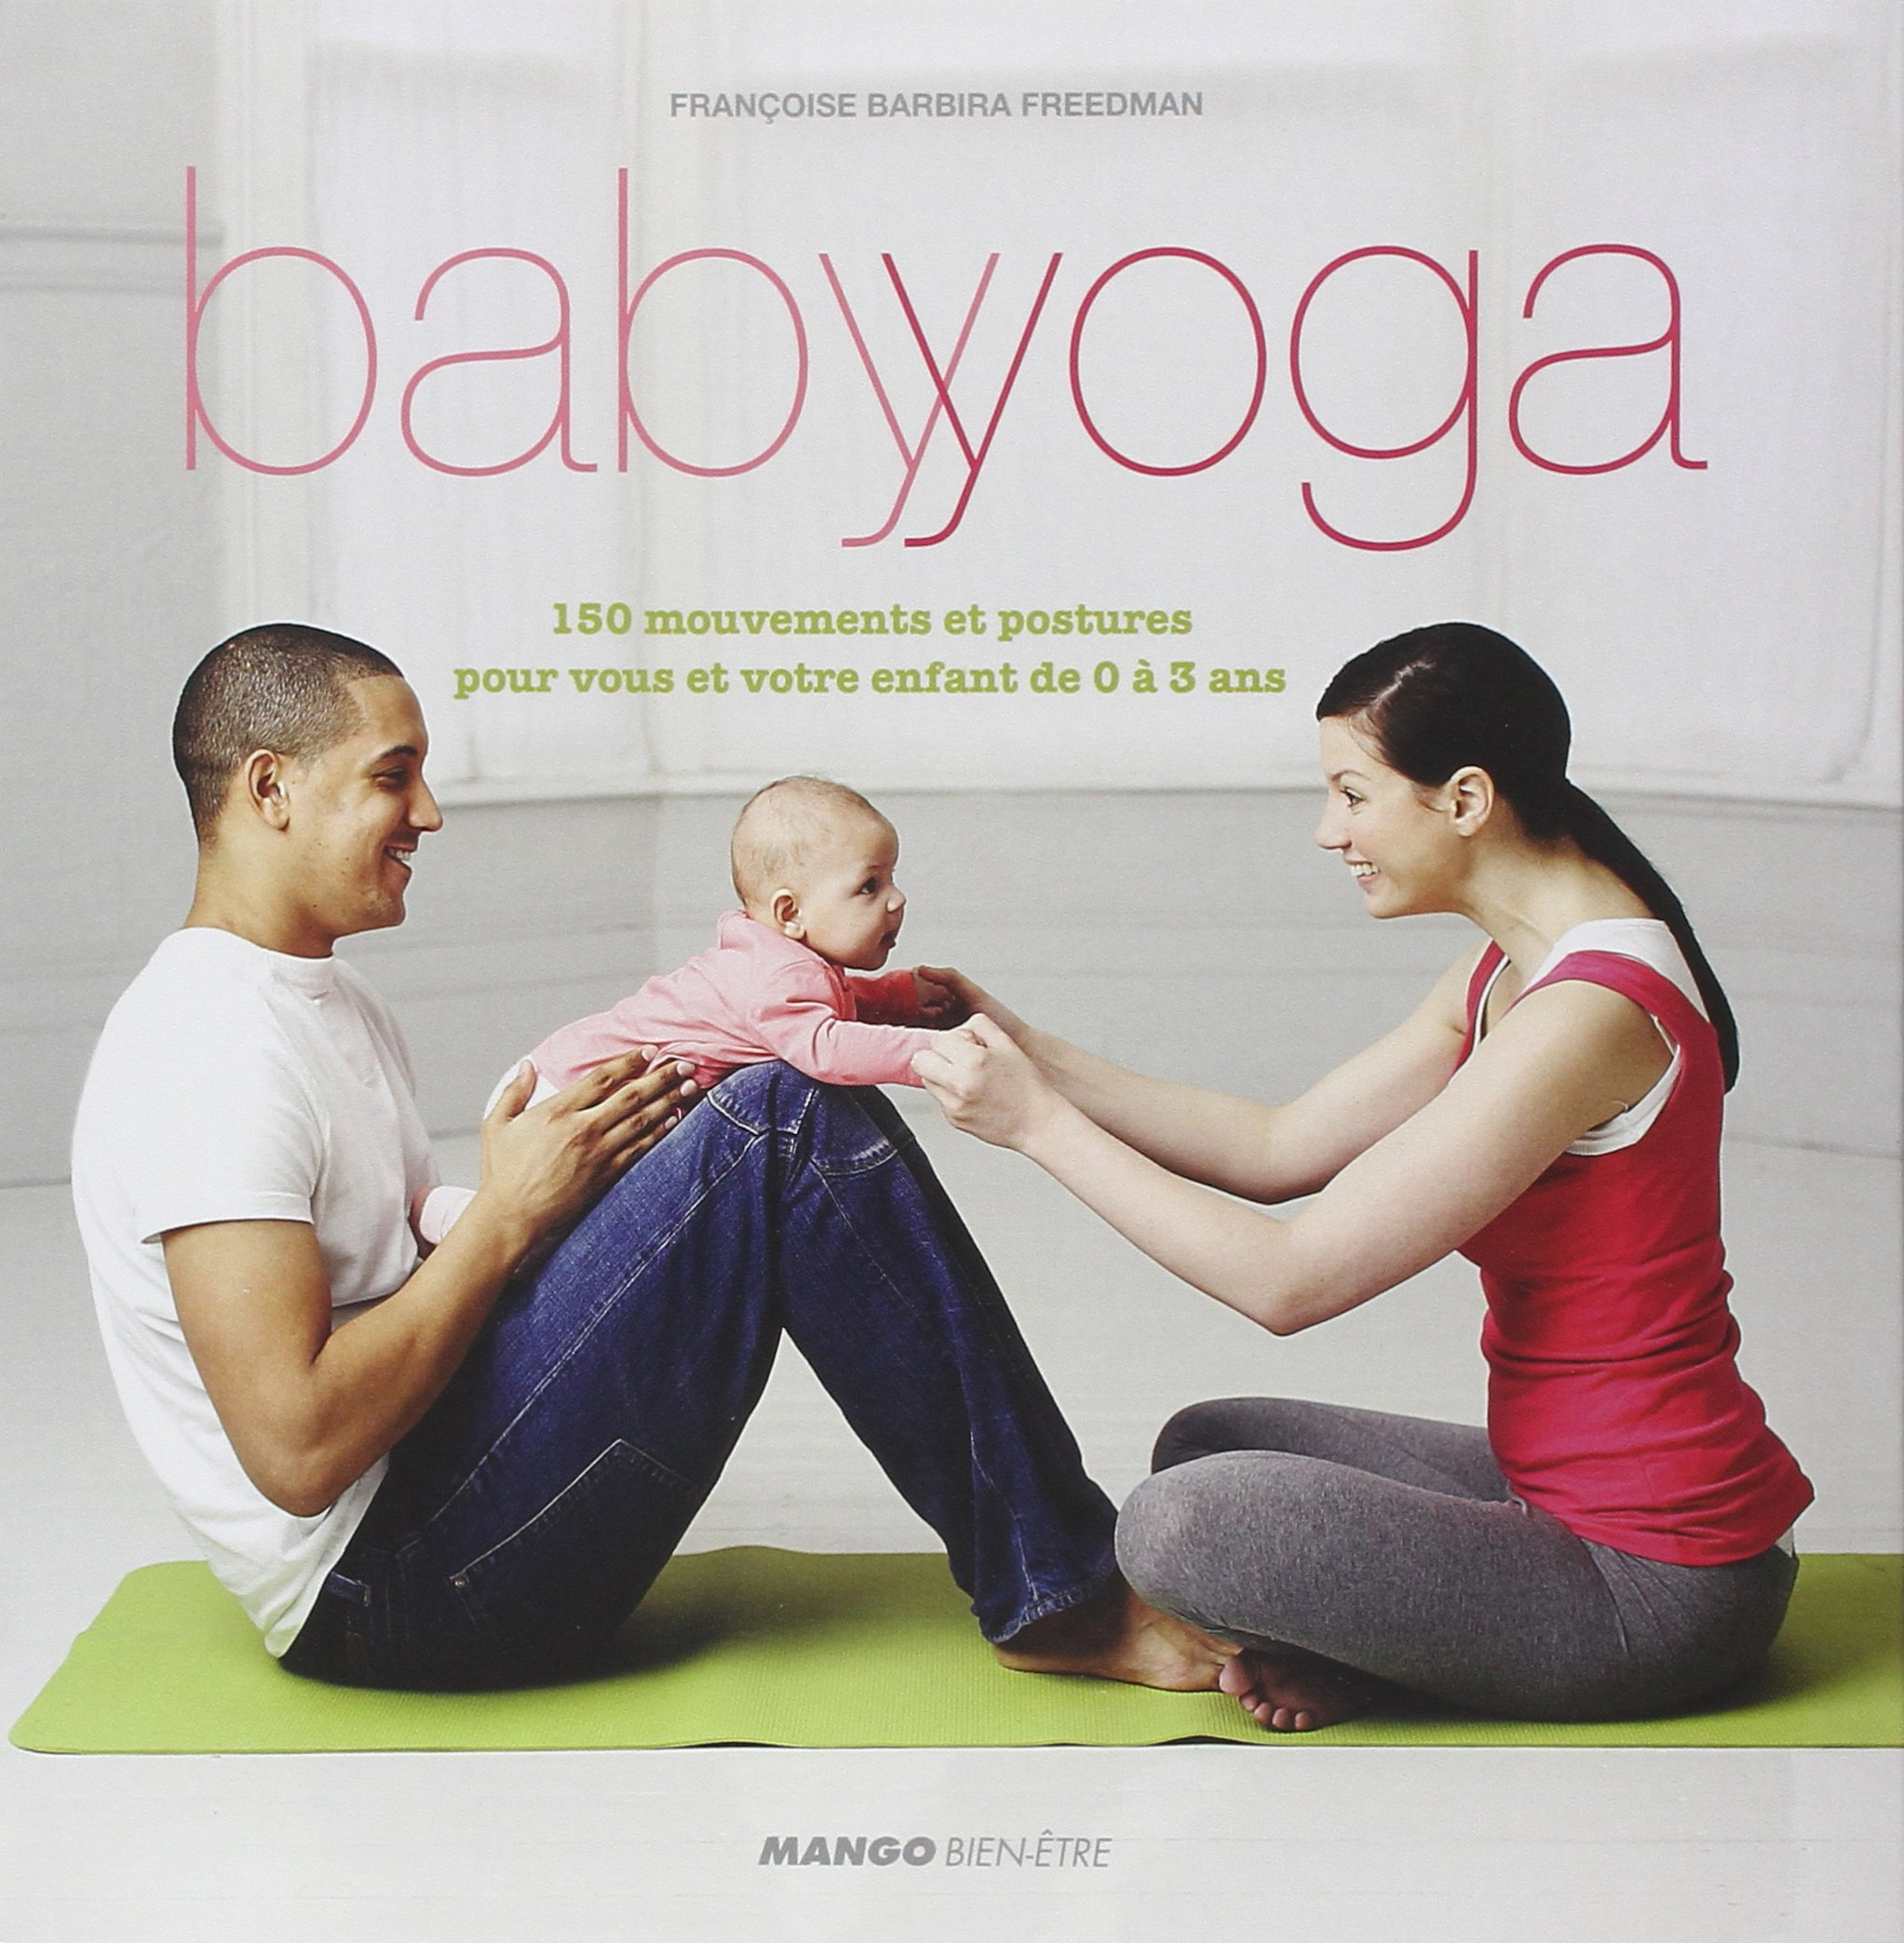 Baby yoga (La vie douce): Amazon.es: Françoise Barbira ...